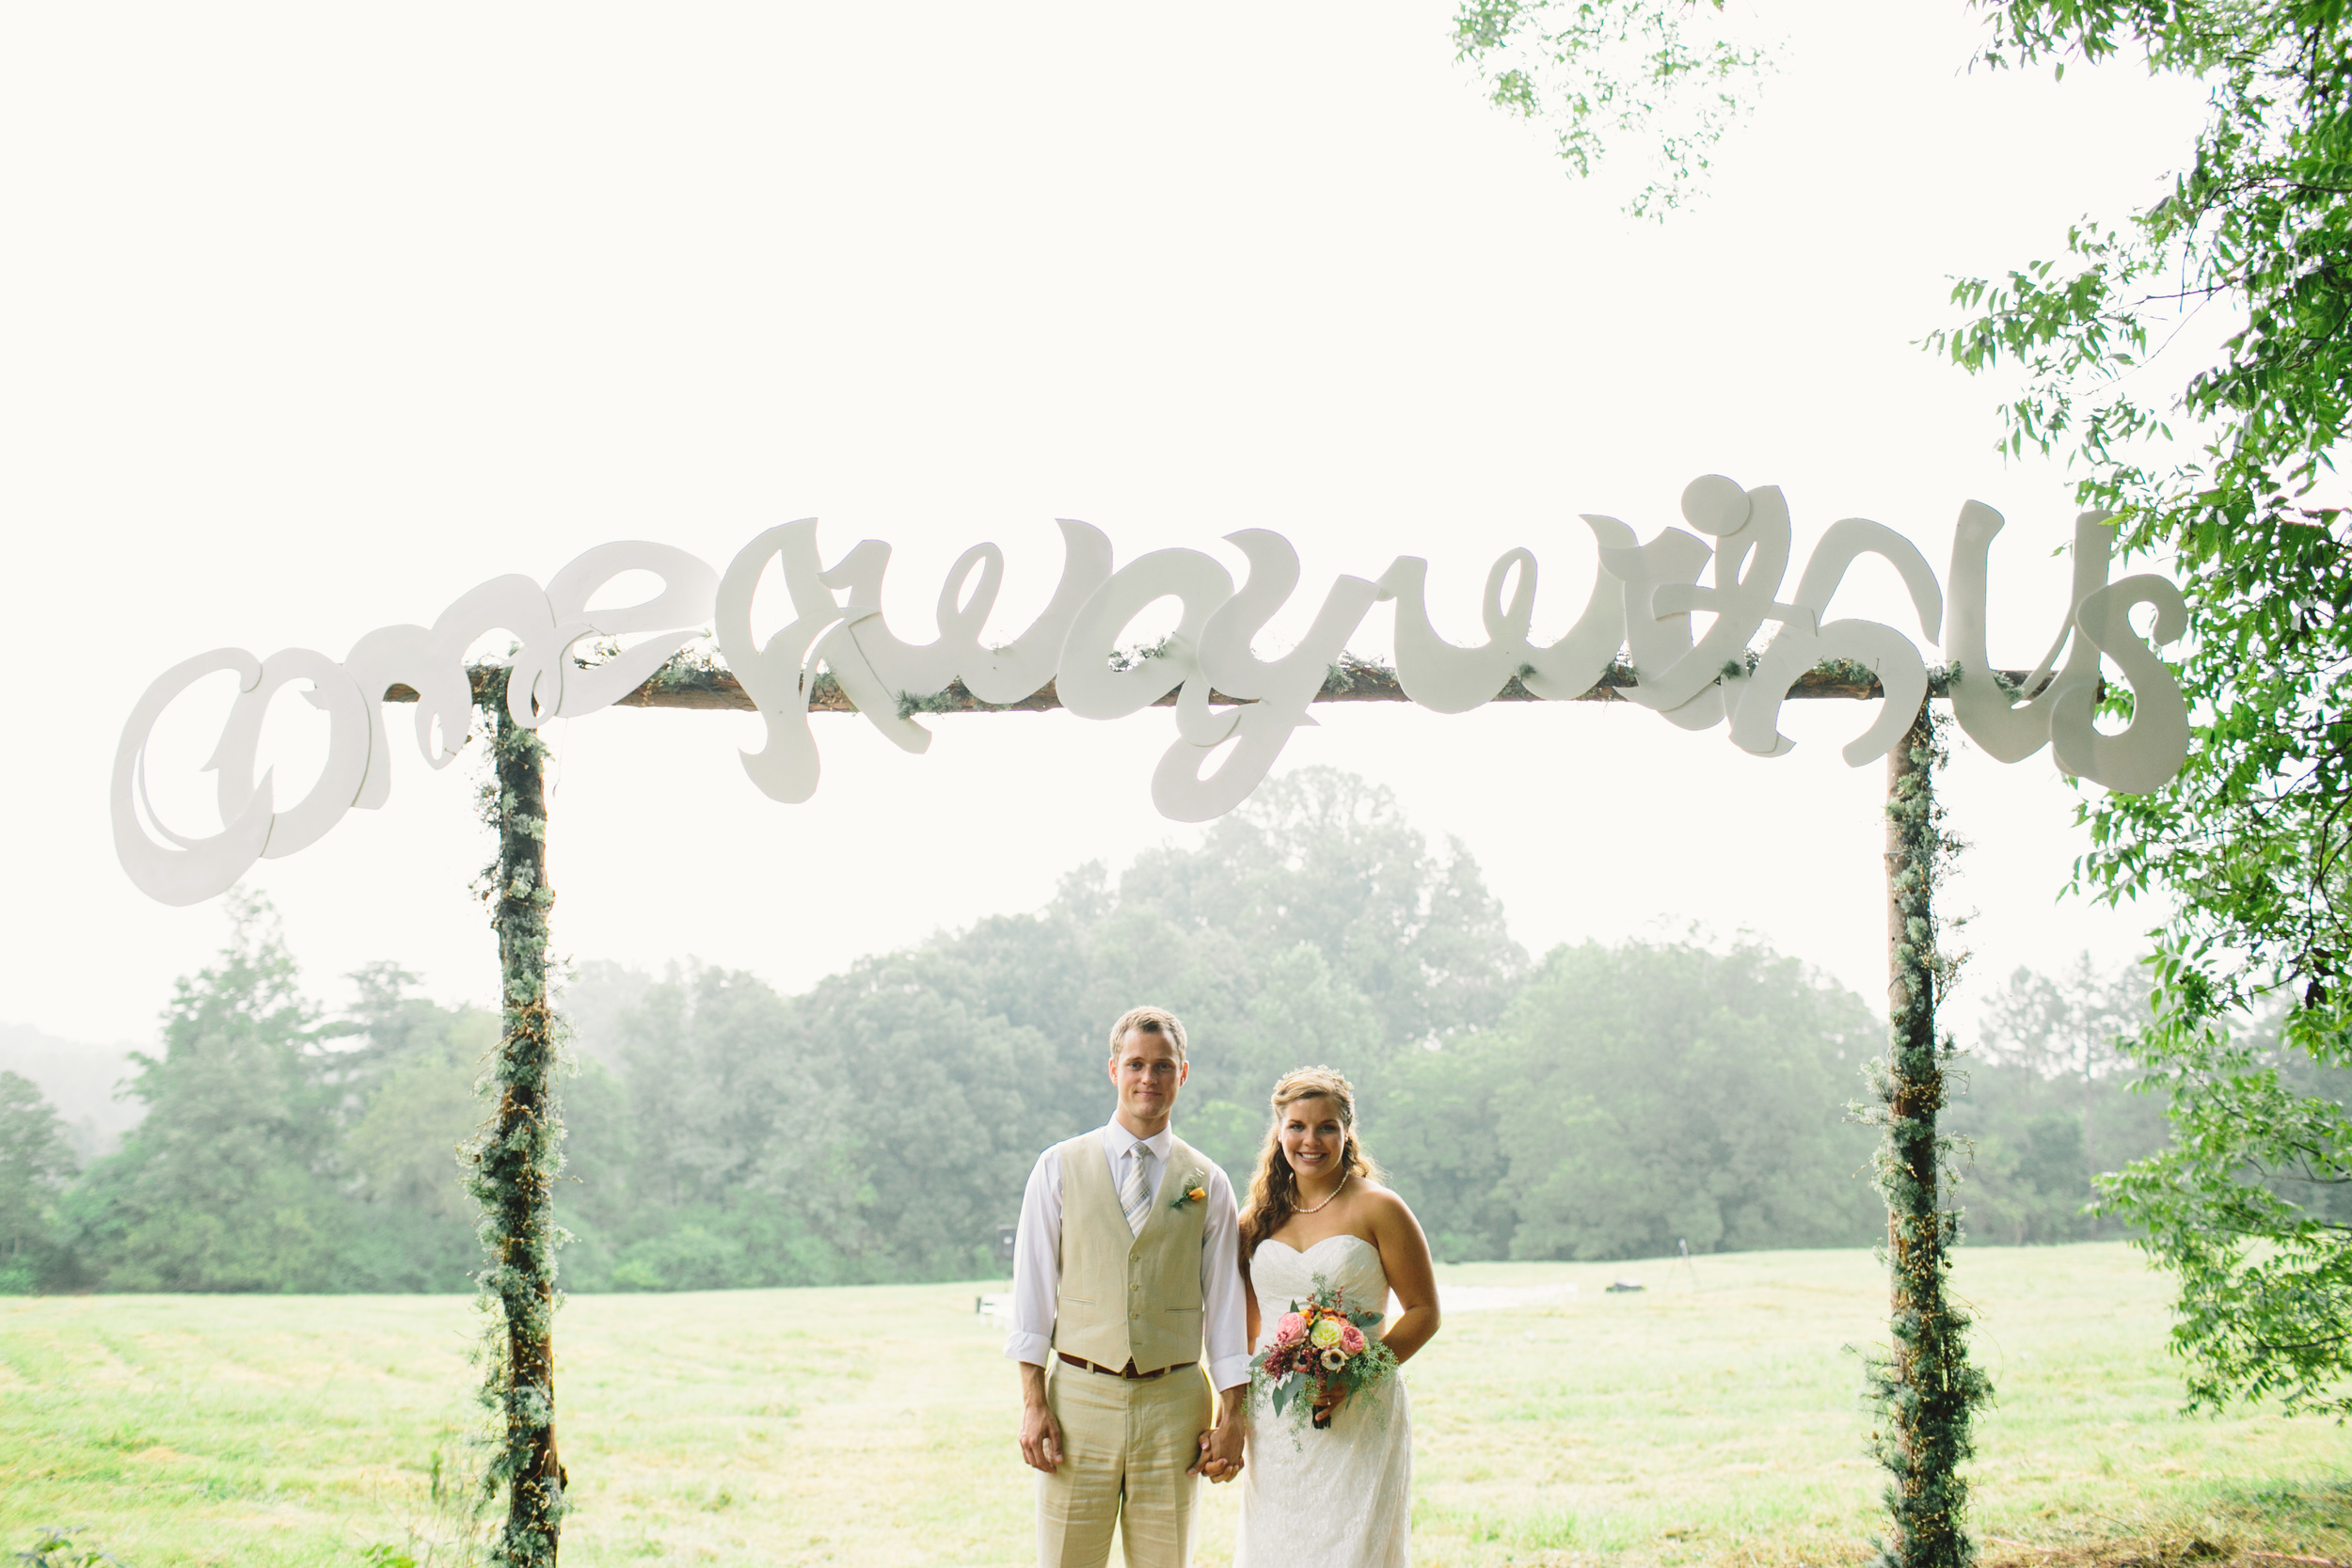 McNiel_2013_wedding_brideandgroom_038.JPG